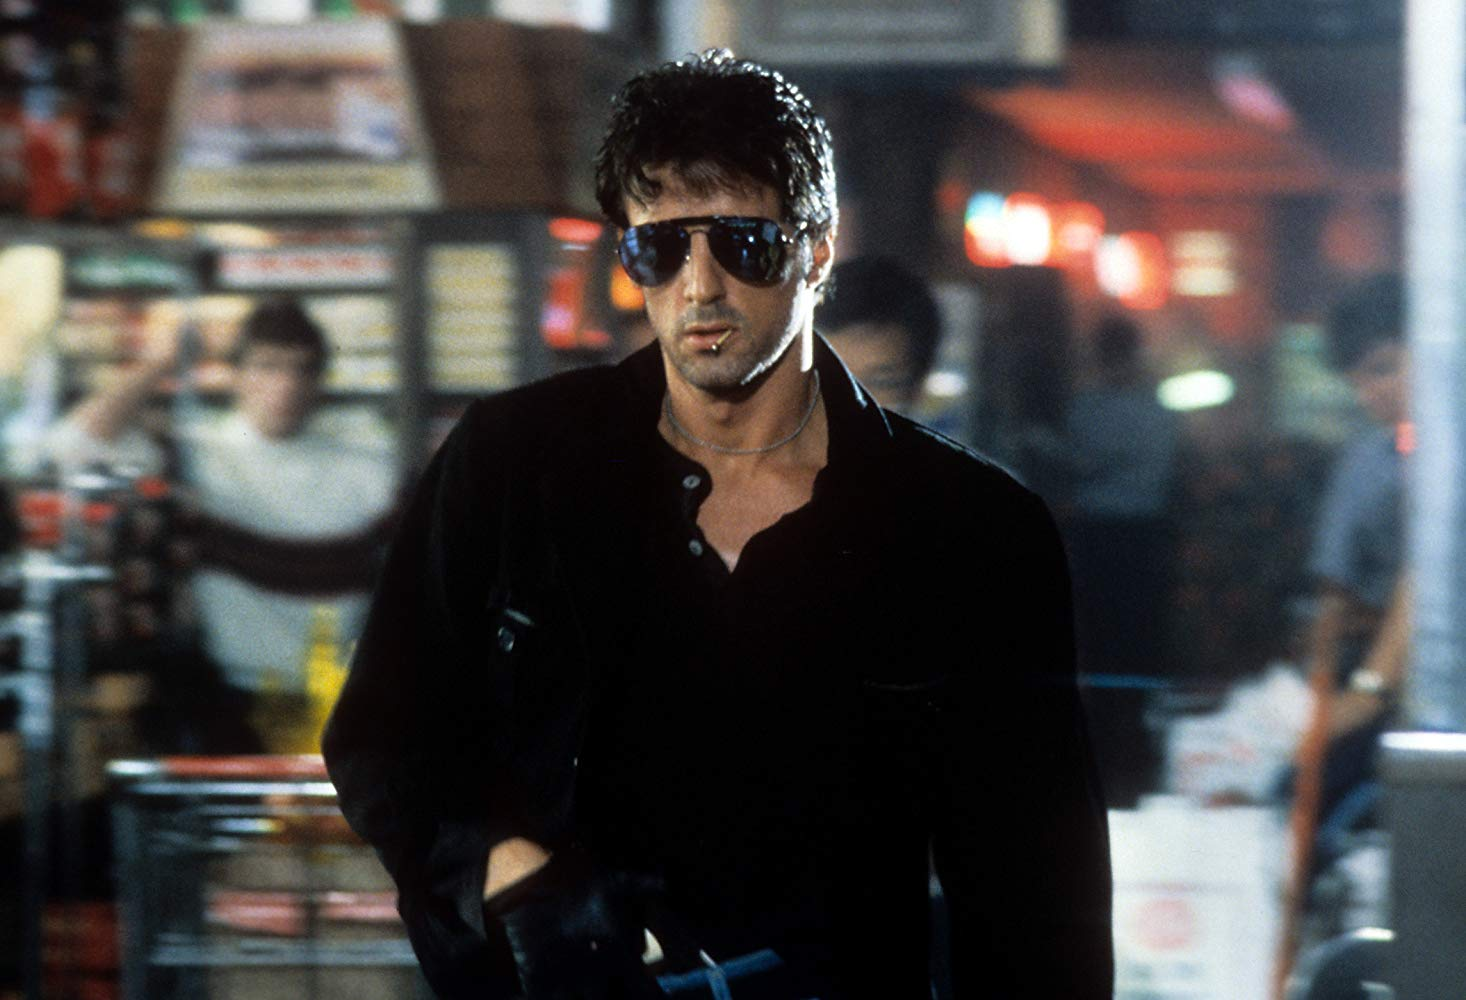 Sylvester Stallone as Lieutenant Marion Cobretti in Cobra (1986)